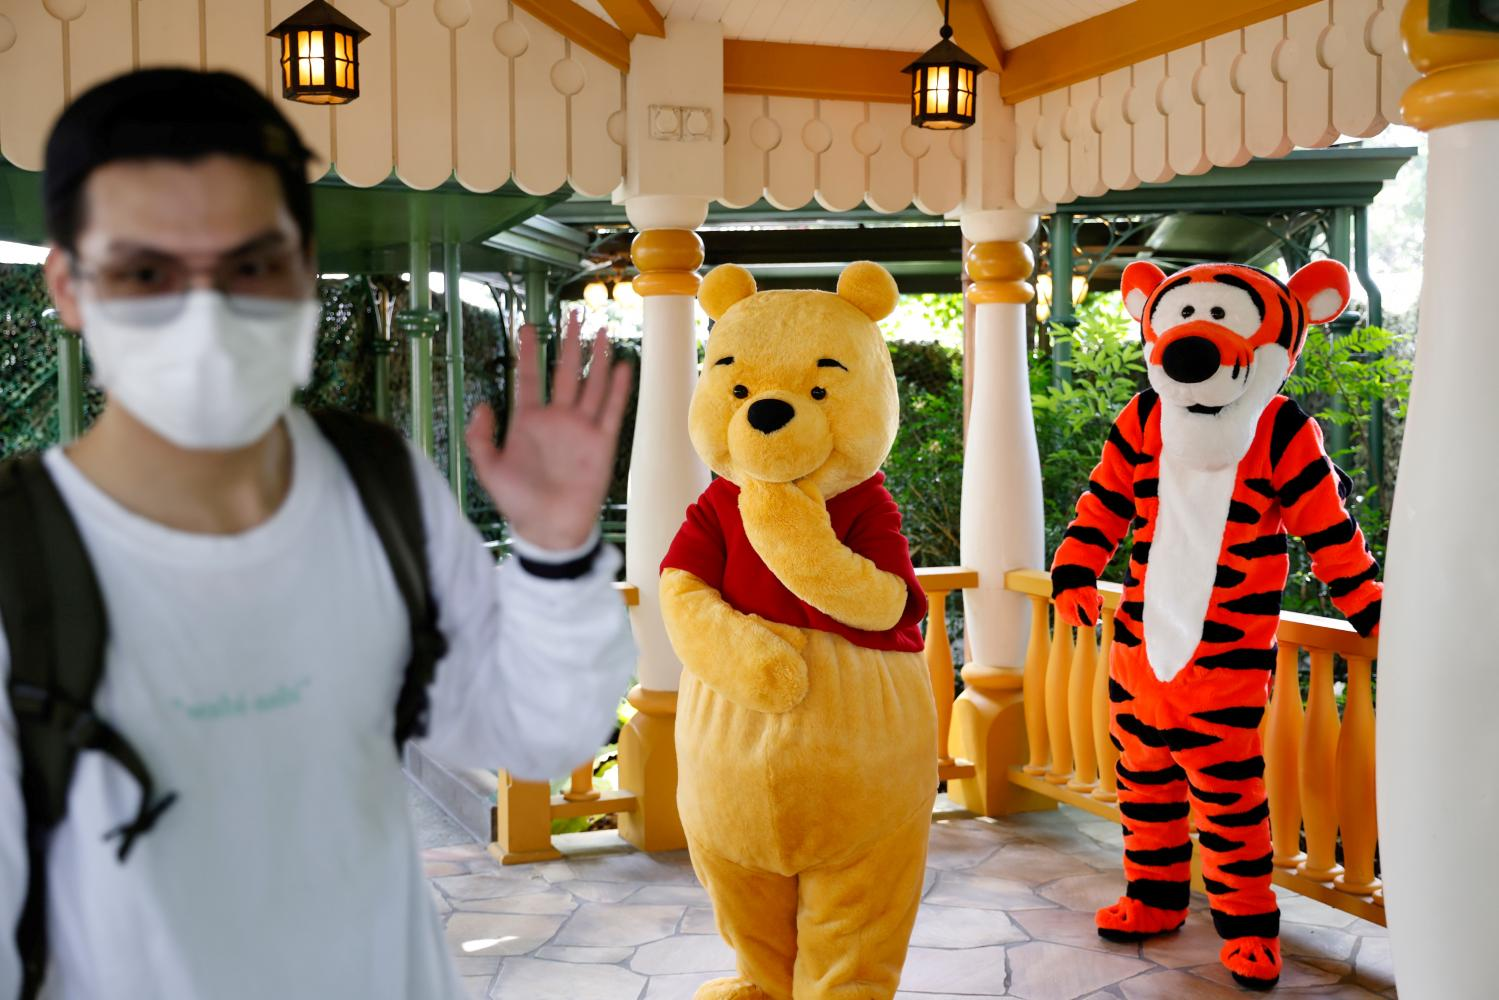 Disney Share Price Rallies On Smaller Than Expected Q4 Loss